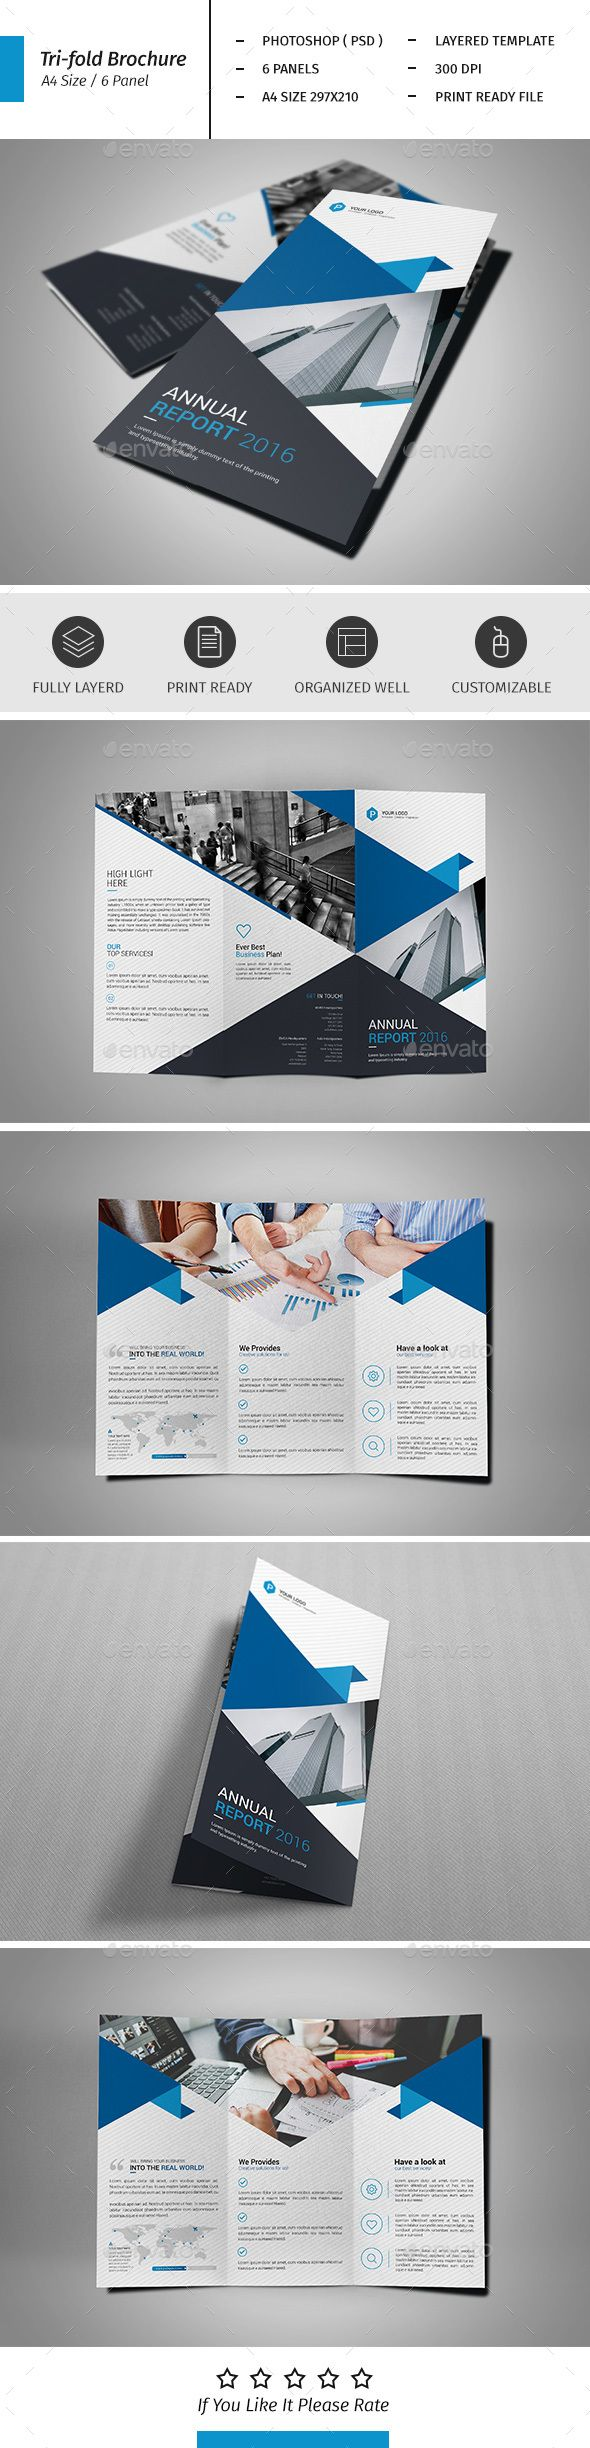 A4 Corporate Business Flyer Template Vol 10 - Corporate Brochure Template PSD. Download here: http://graphicriver.net/item/a4-corporate-business-flyer-template-vol-10/16696293?ref=yinkira